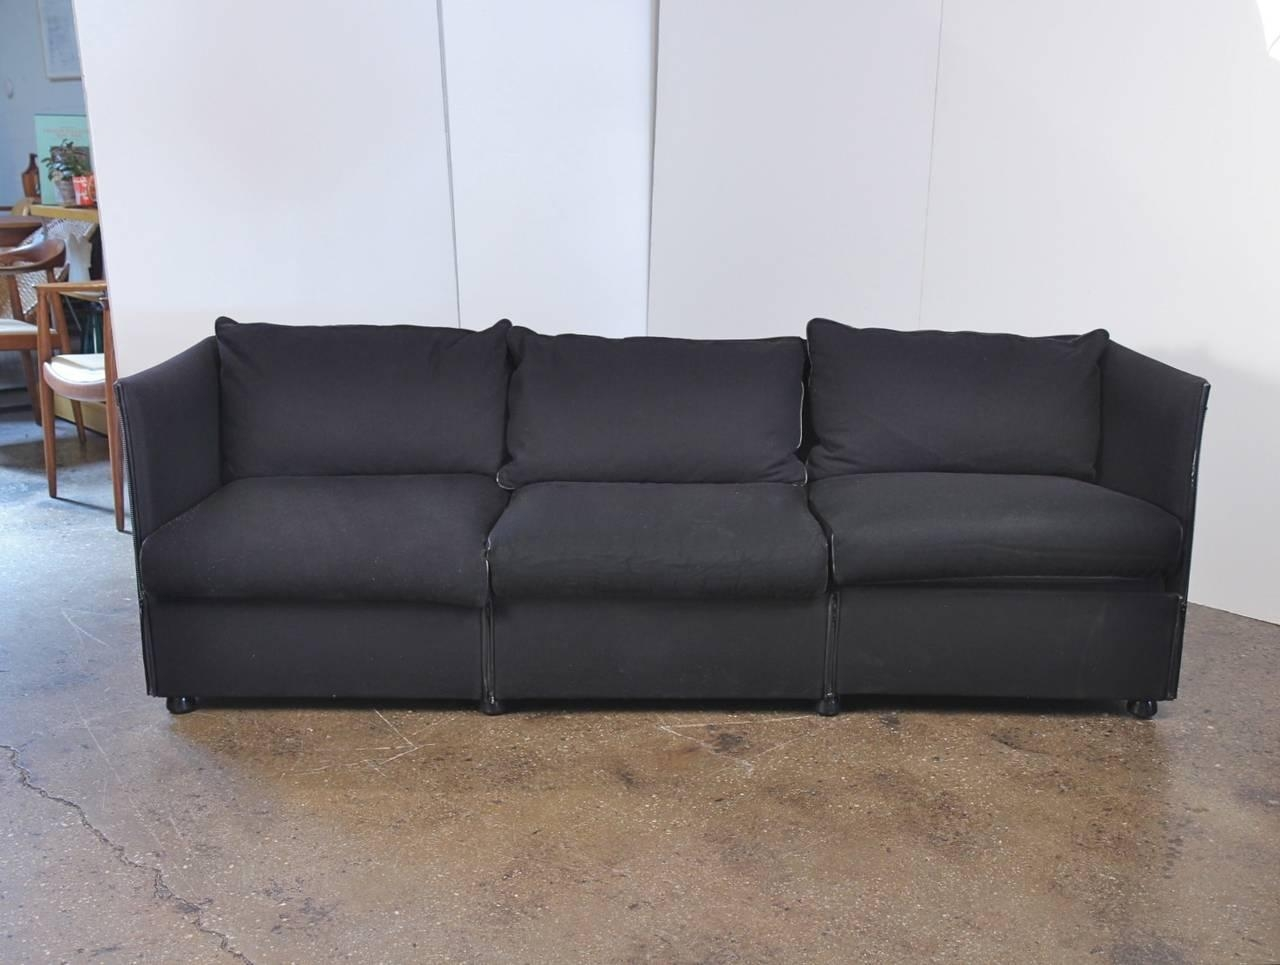 Mario Bellini Sofa For Cassina At 1Stdibs Intended For Bellini Sofas (Image 10 of 20)